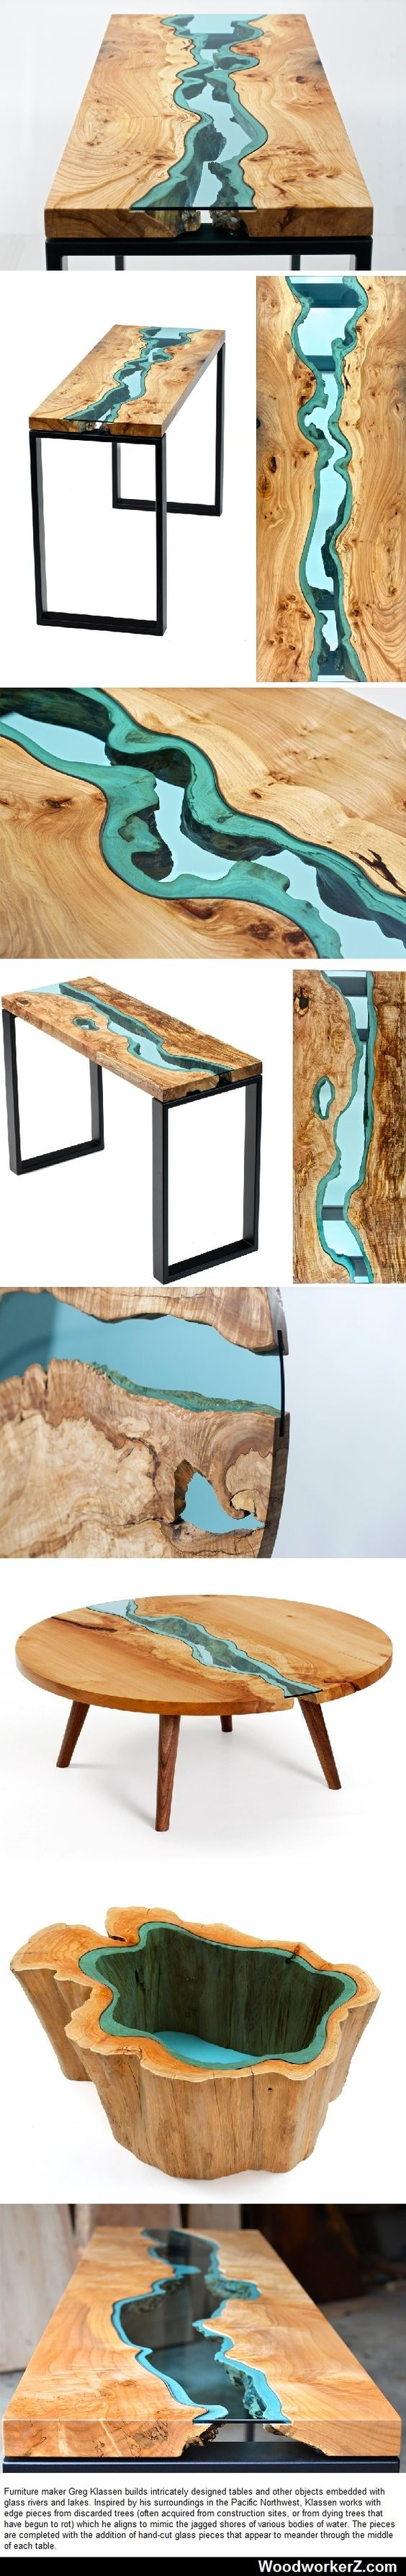 Wood Furniture Embedded with Glass Rivers and Lakes by Greg Klassen.